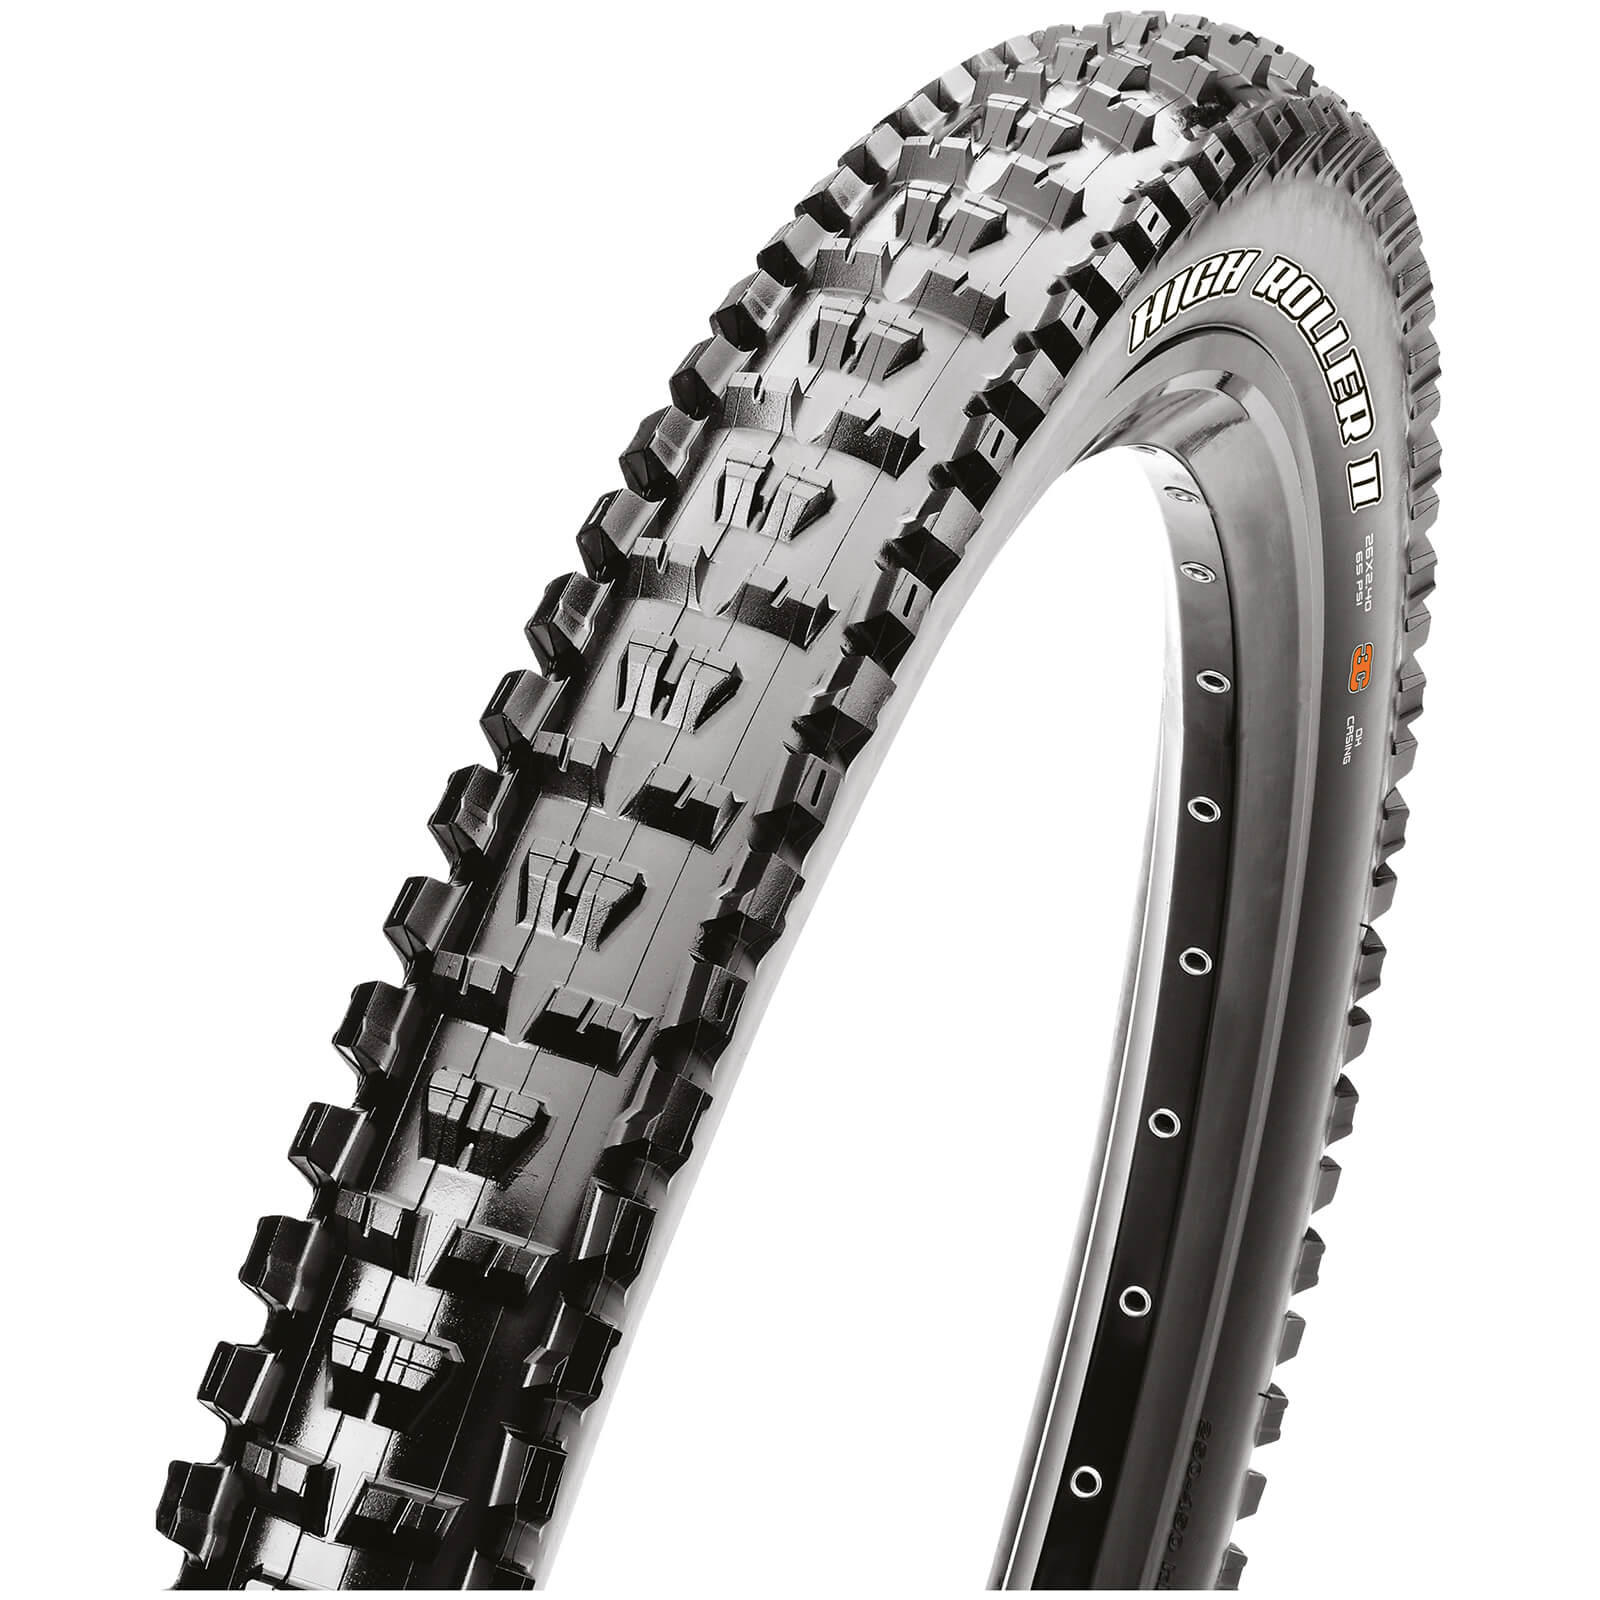 "Maxxis High Roller II Super Tacky MTB Tyre - 27.5"" x 2.40"""